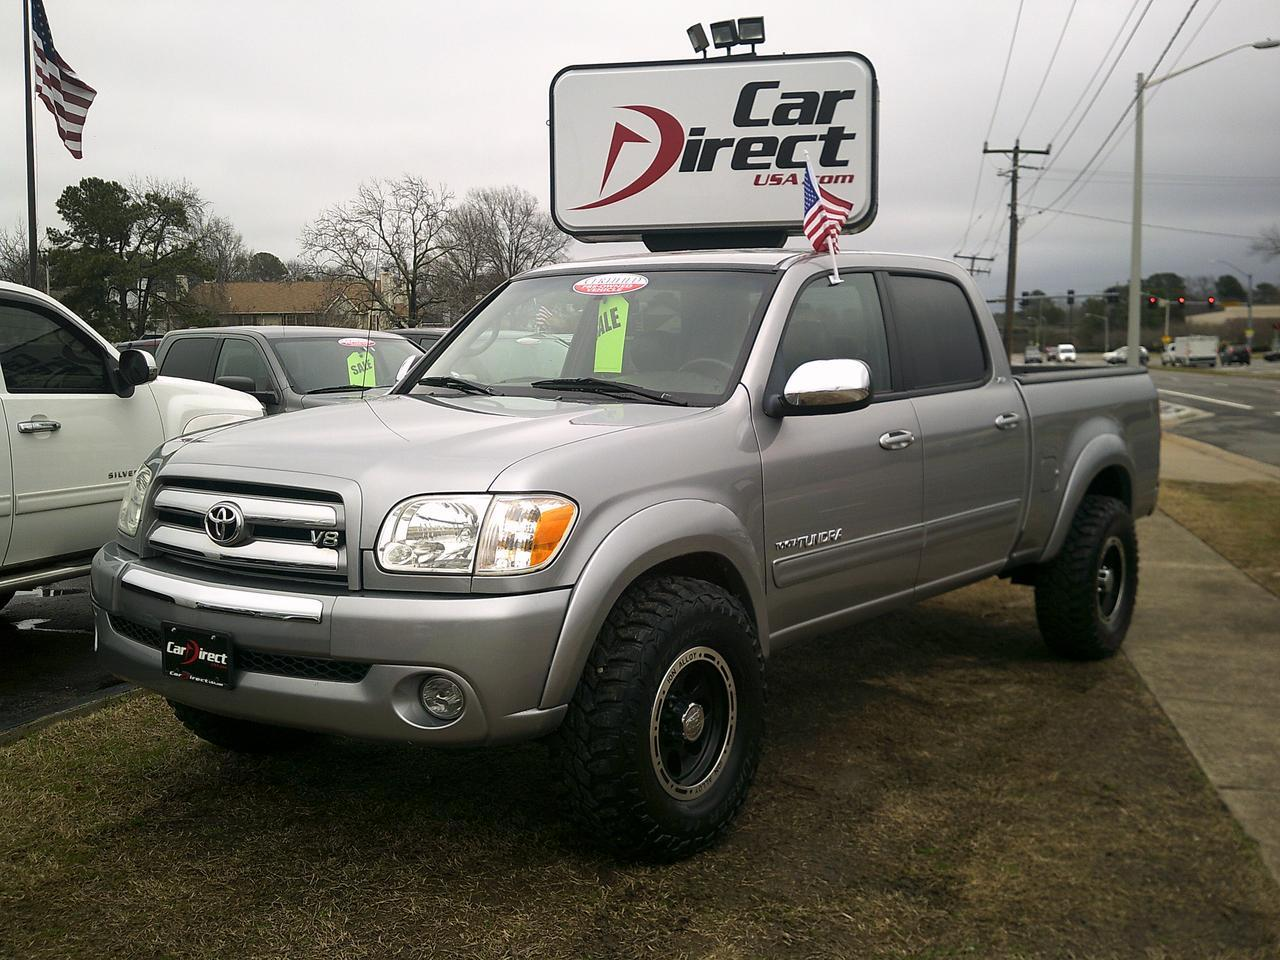 Toyota Virginia Beach >> 2006 TOYOTA TUNDRA SR5 DOUBLE CAB X-SP PACKAGE, CARFAX CERTIFIED, BLACK ION ALLOY WHEELS, 6 DISC ...